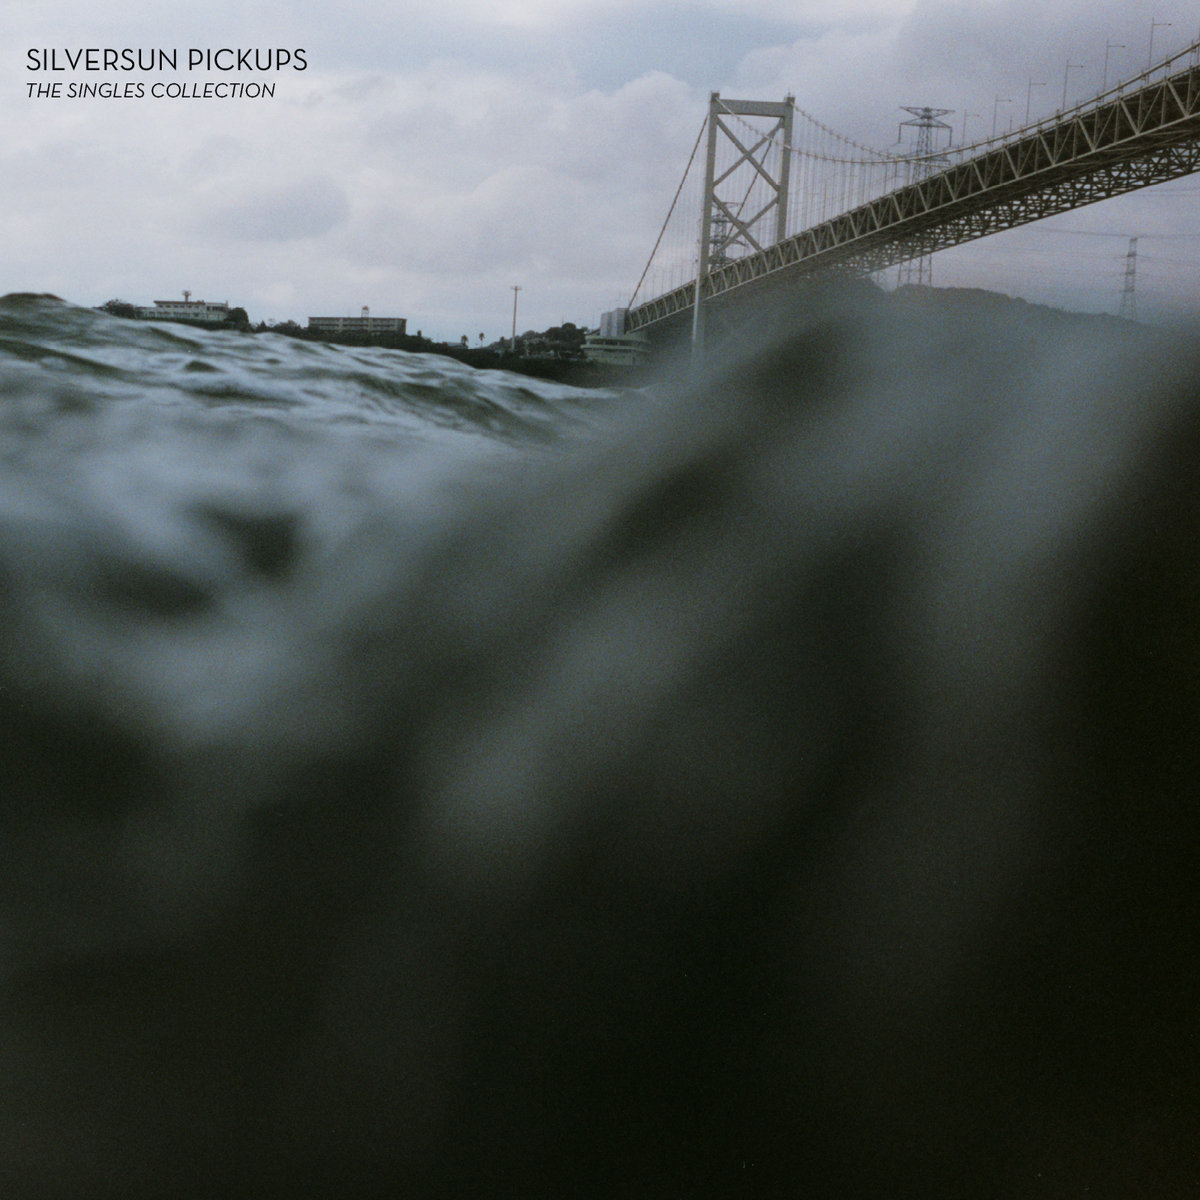 Silversun Pickups - The Singles Collection - Digital